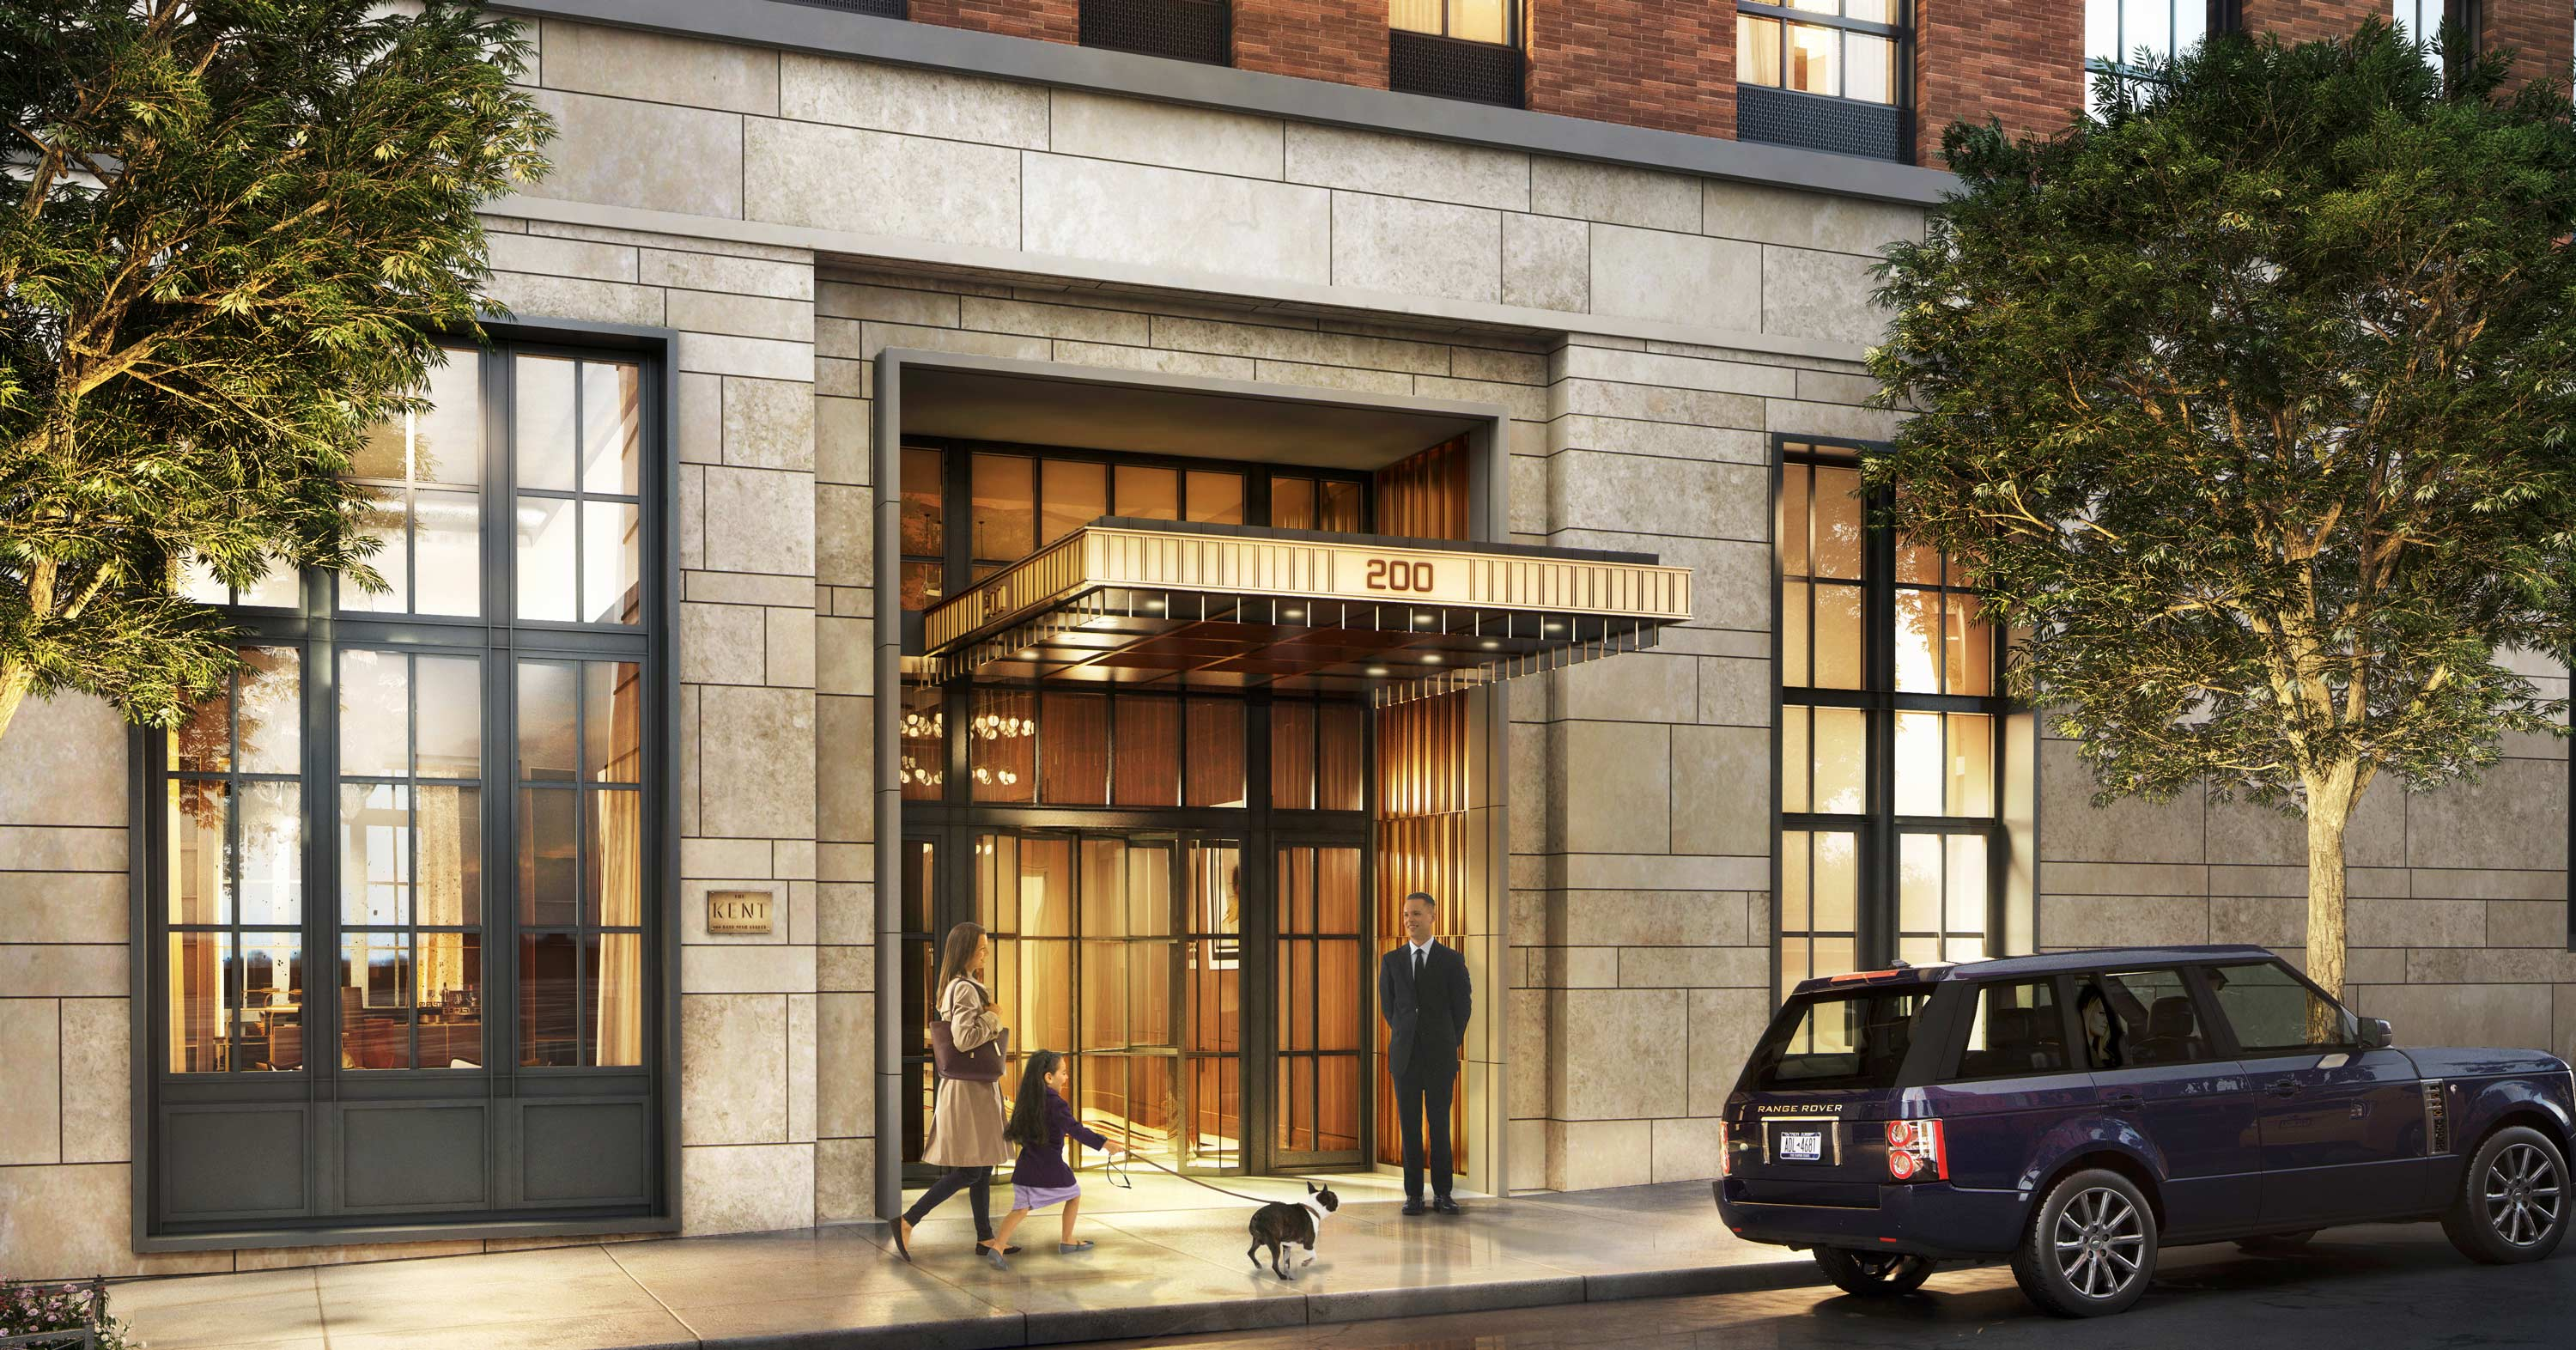 The Kent at 200 East 95th Street in Upper East Side - Luxury